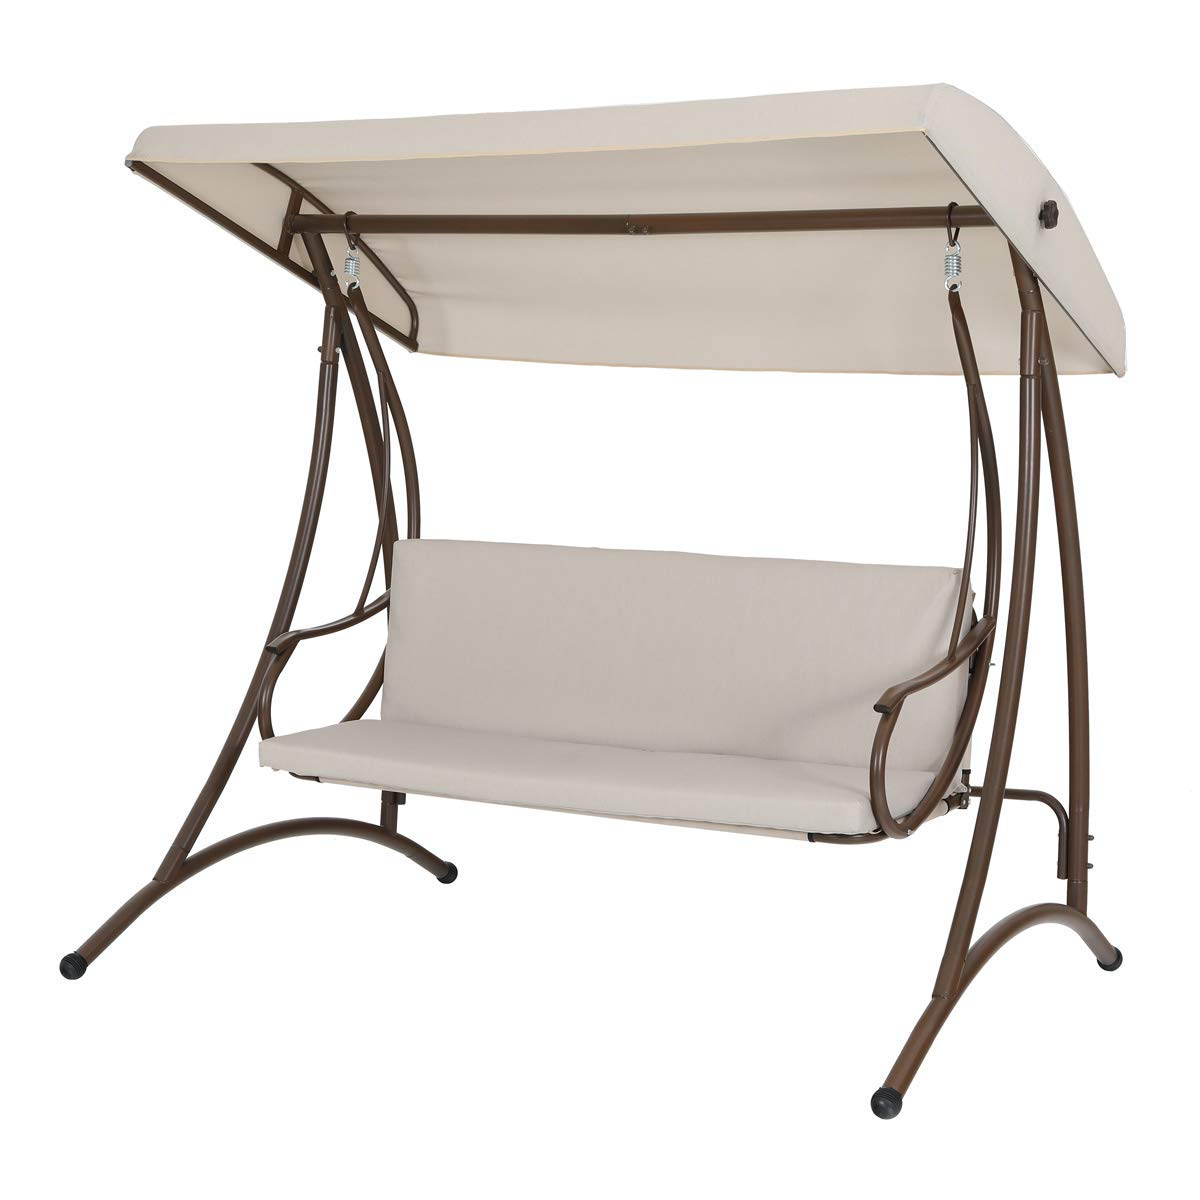 Mf Studio 3 Person Outdoor Large Convertible Canopy Swing Intended For Most Current 2 Person Outdoor Convertible Canopy Swing Gliders With Removable Cushions Beige (View 3 of 30)